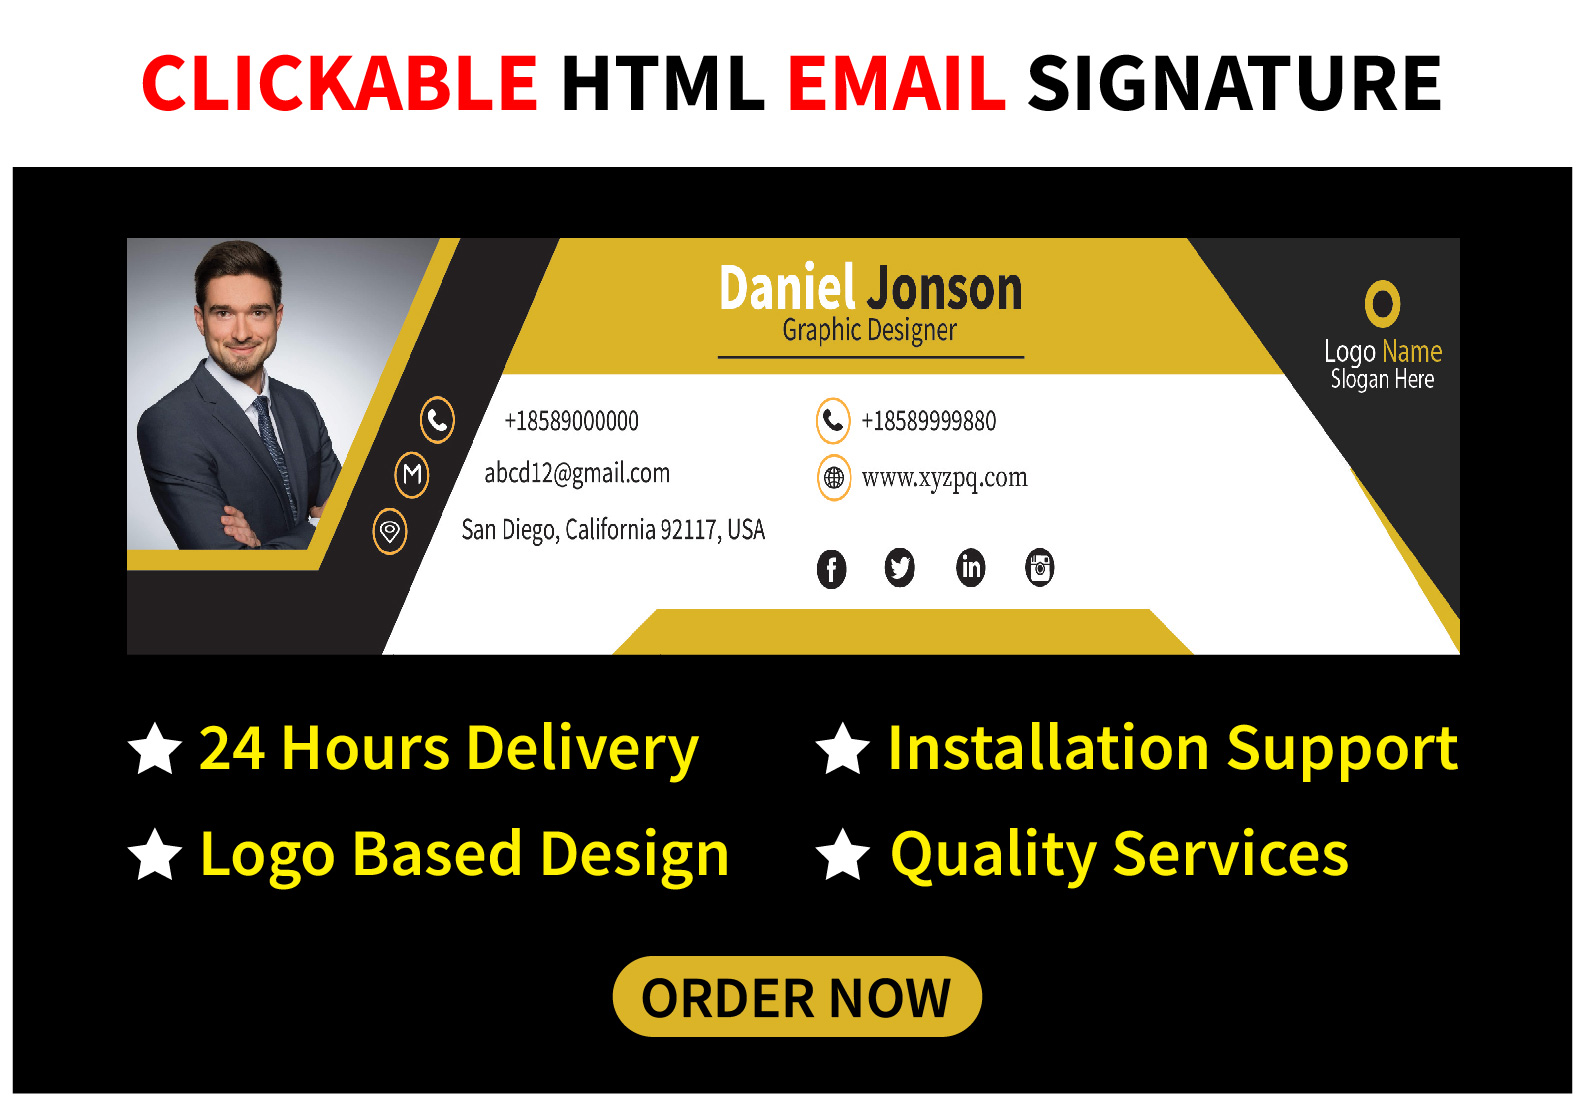 I will create or design a professional clickable html email signature